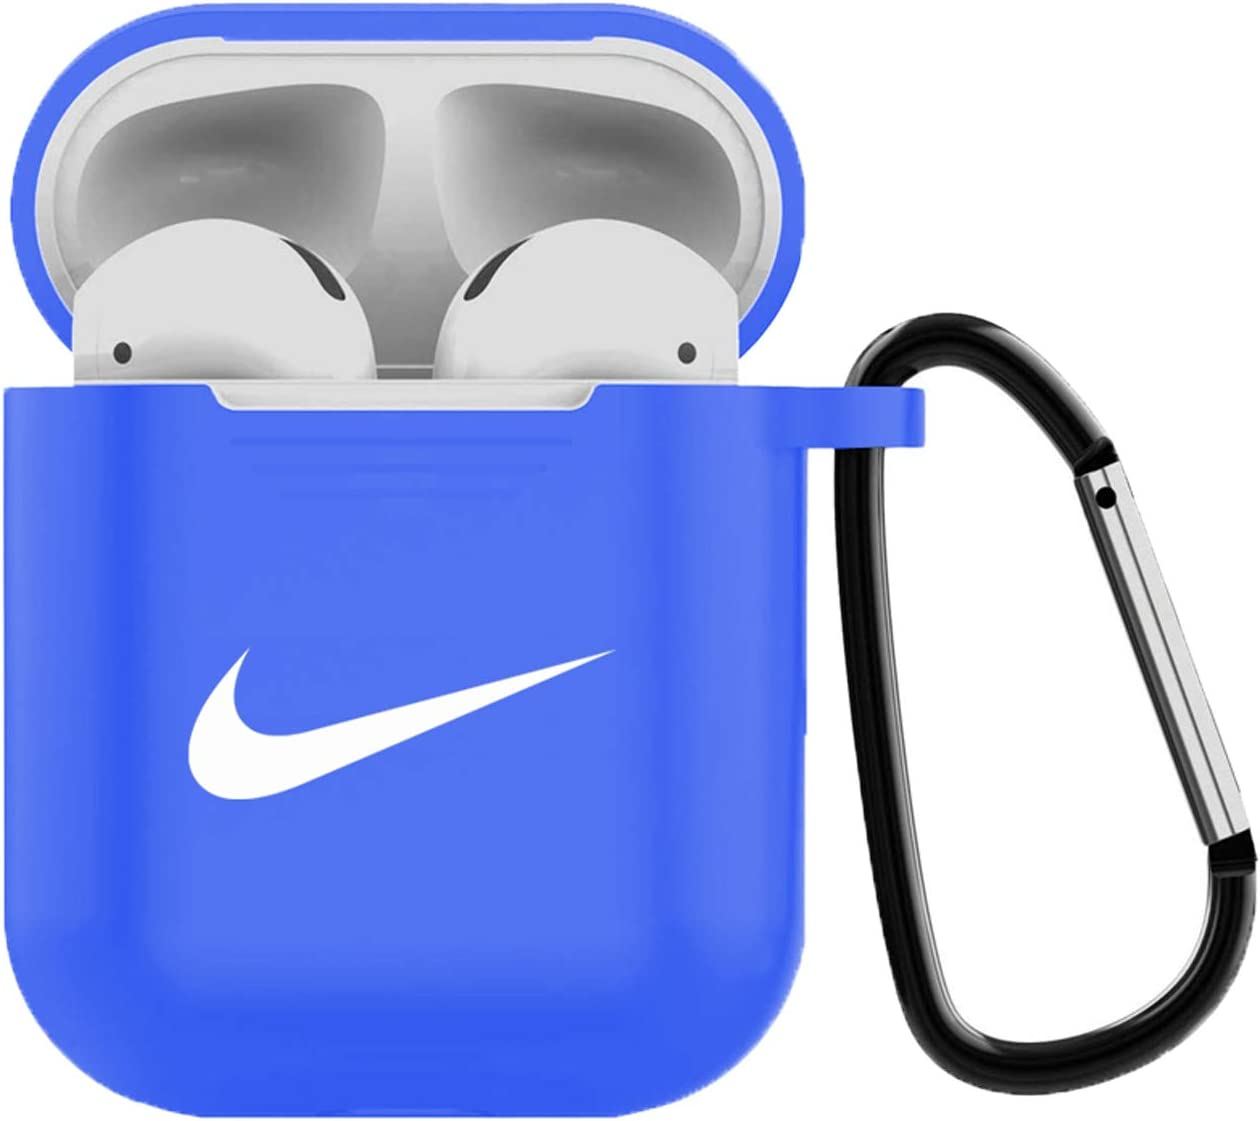 AirPods Case Cover Silicone Skin with Keychain for AirPods Case Generation 2 and 1 Blue